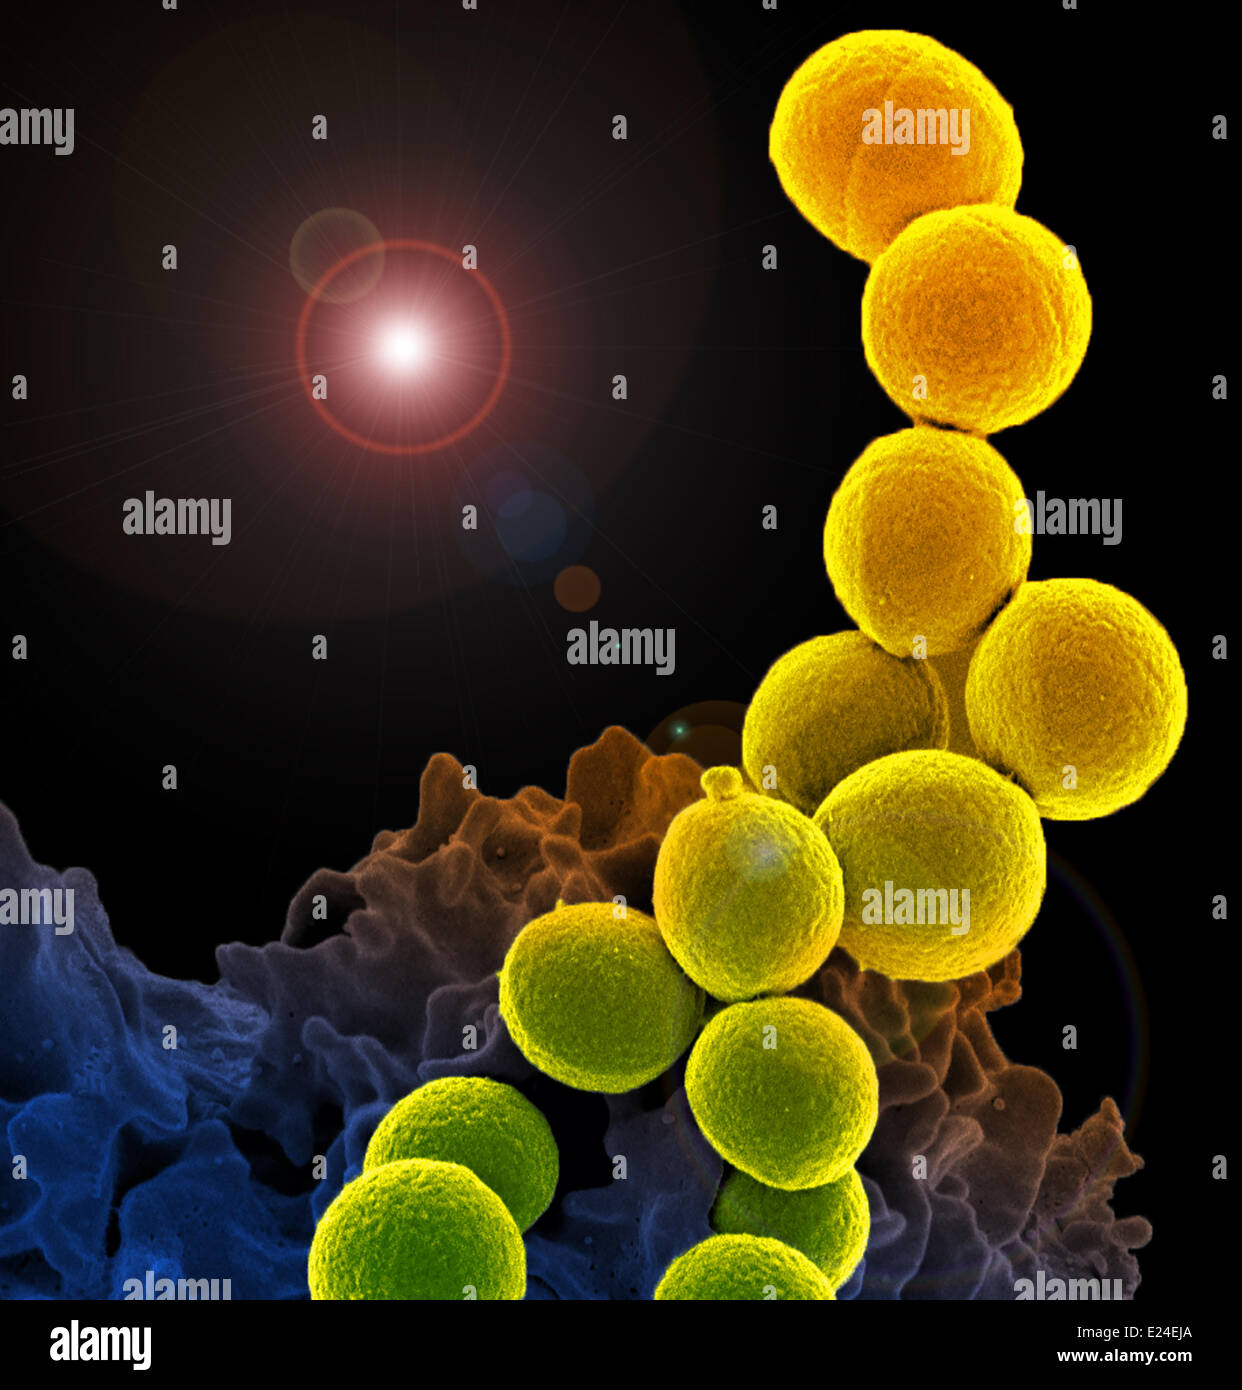 Interaction of a white blood cell with mrsa. - Stock Image